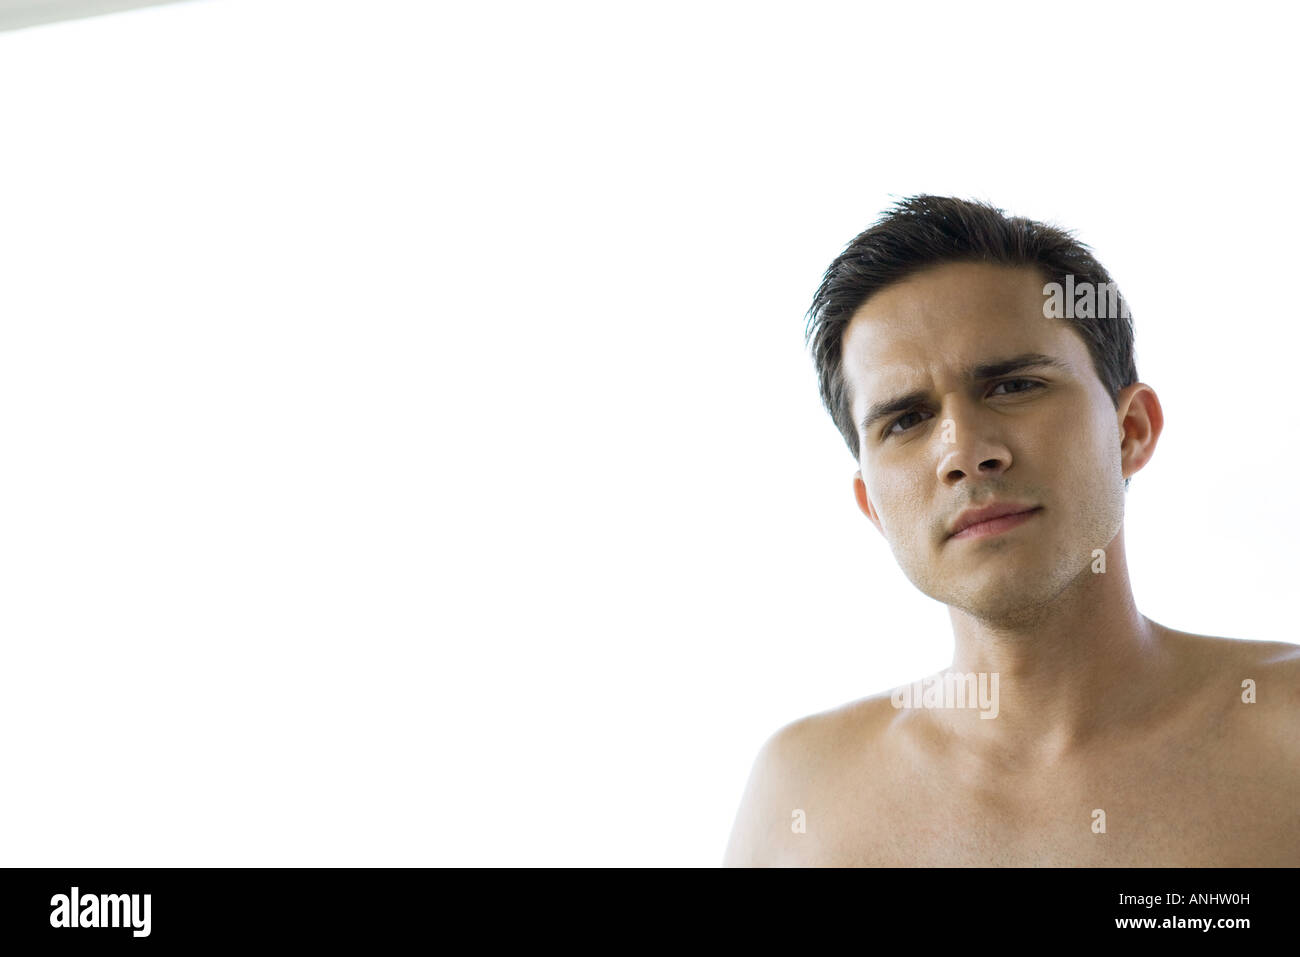 Barechested young man, looking at camera, head and shoulders - Stock Image